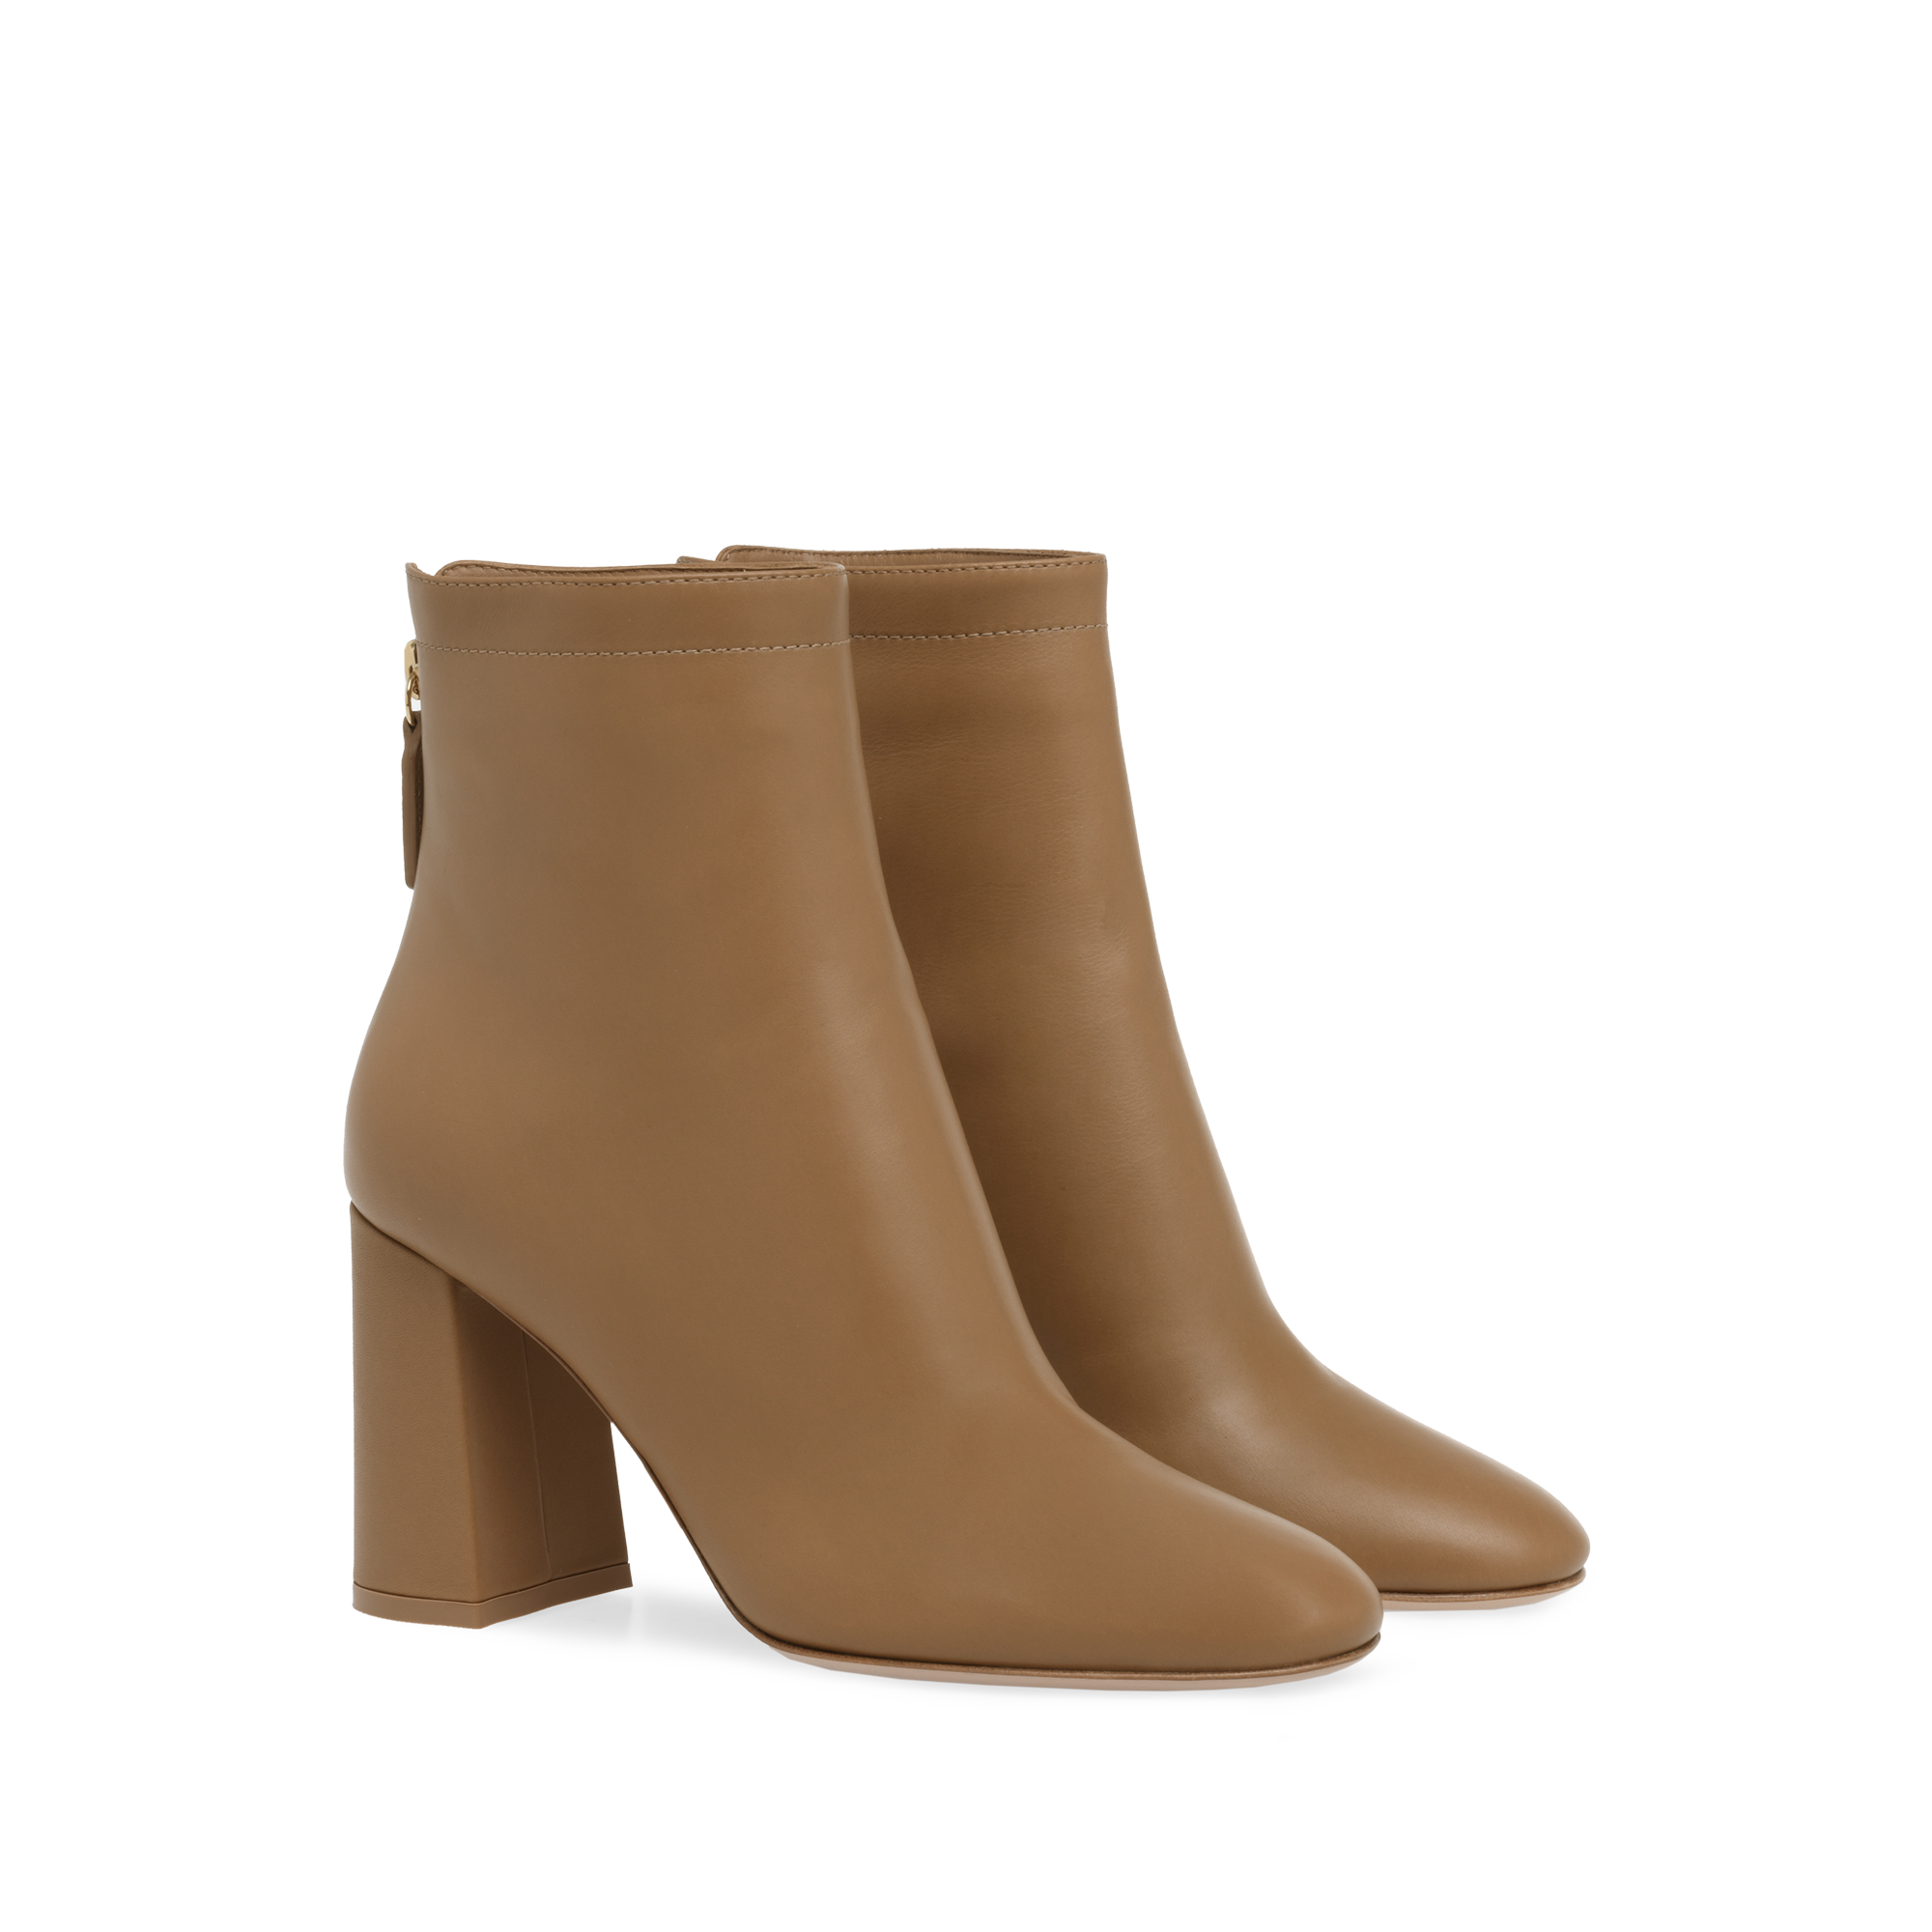 HYDER – Boots – Woman | Gianvito Rossi